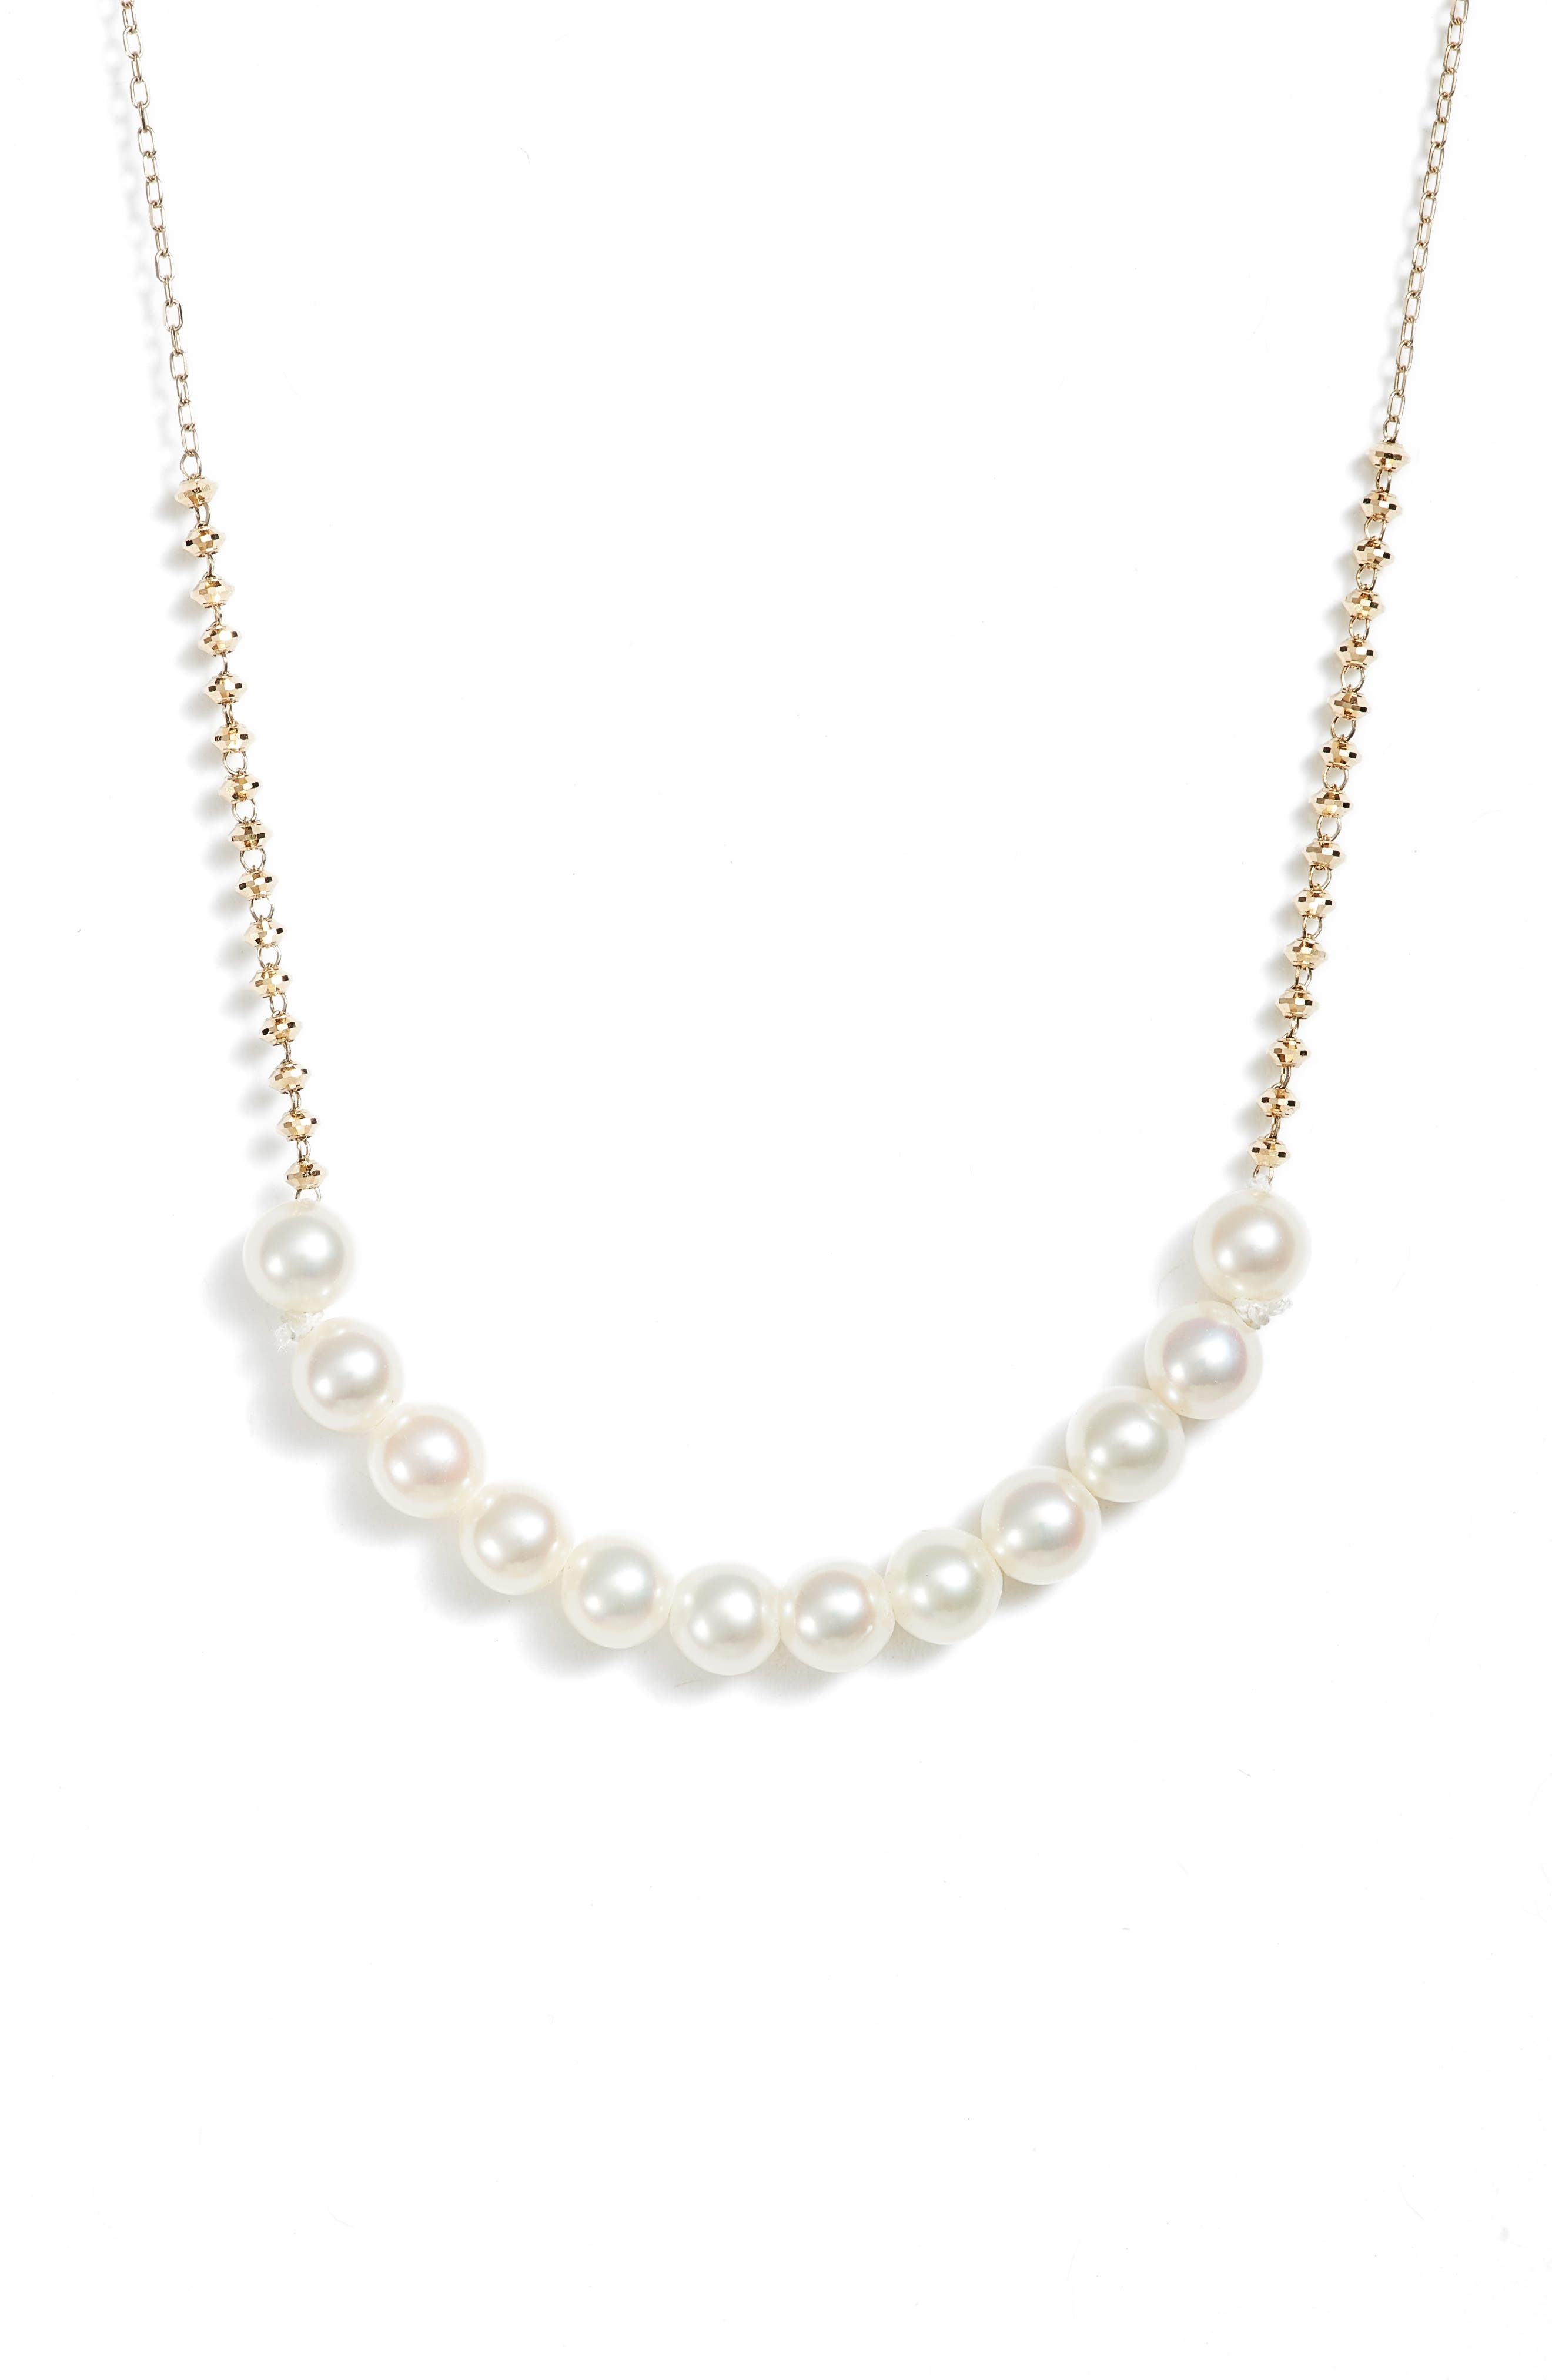 Beaded Pearl Necklace,                         Main,                         color, YELLOW GOLD/ WHITE PEARL